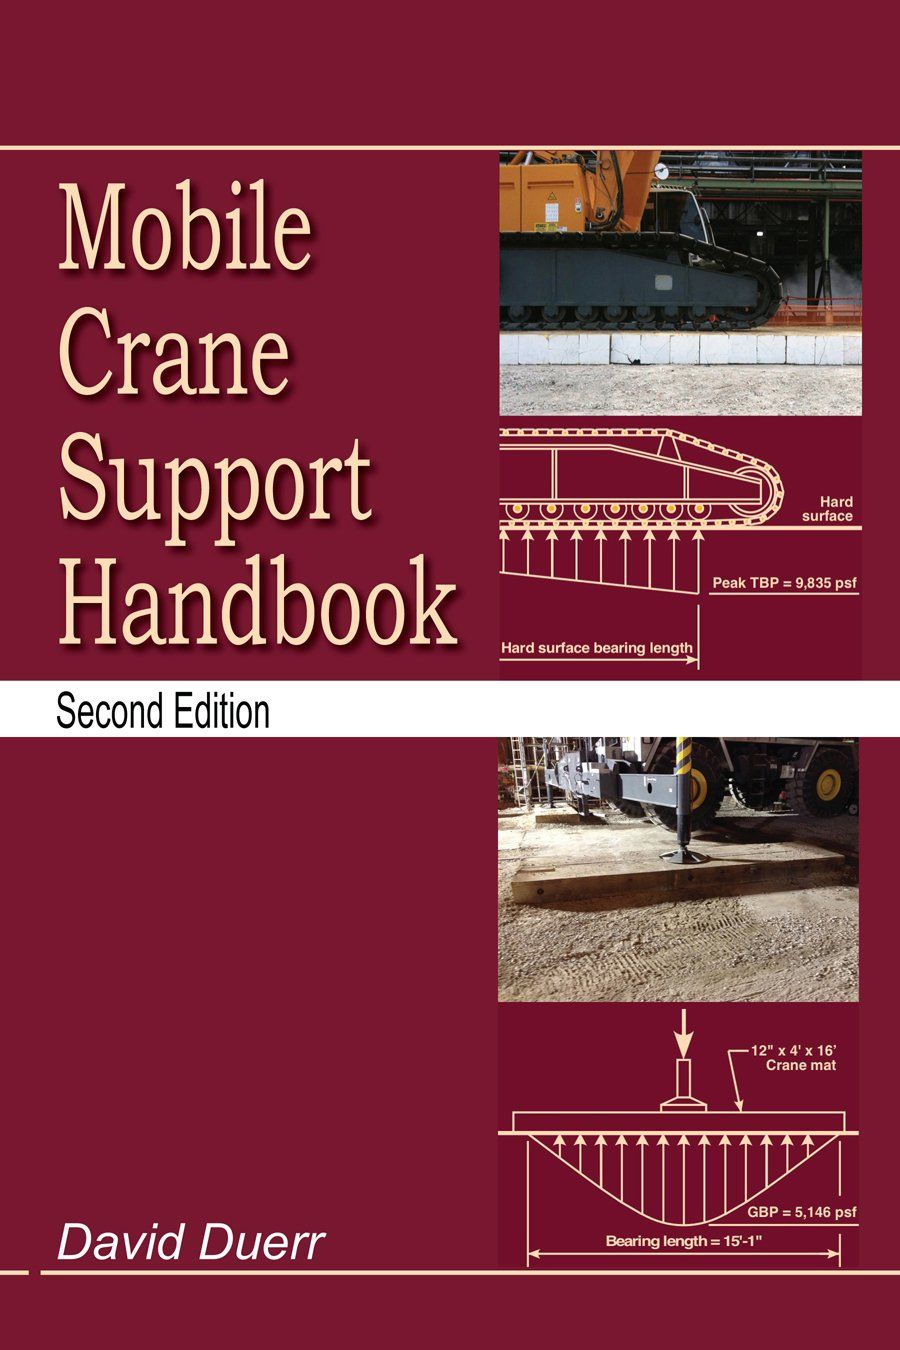 Mobile Crane Support Handbook Second Edition Construction Jobs